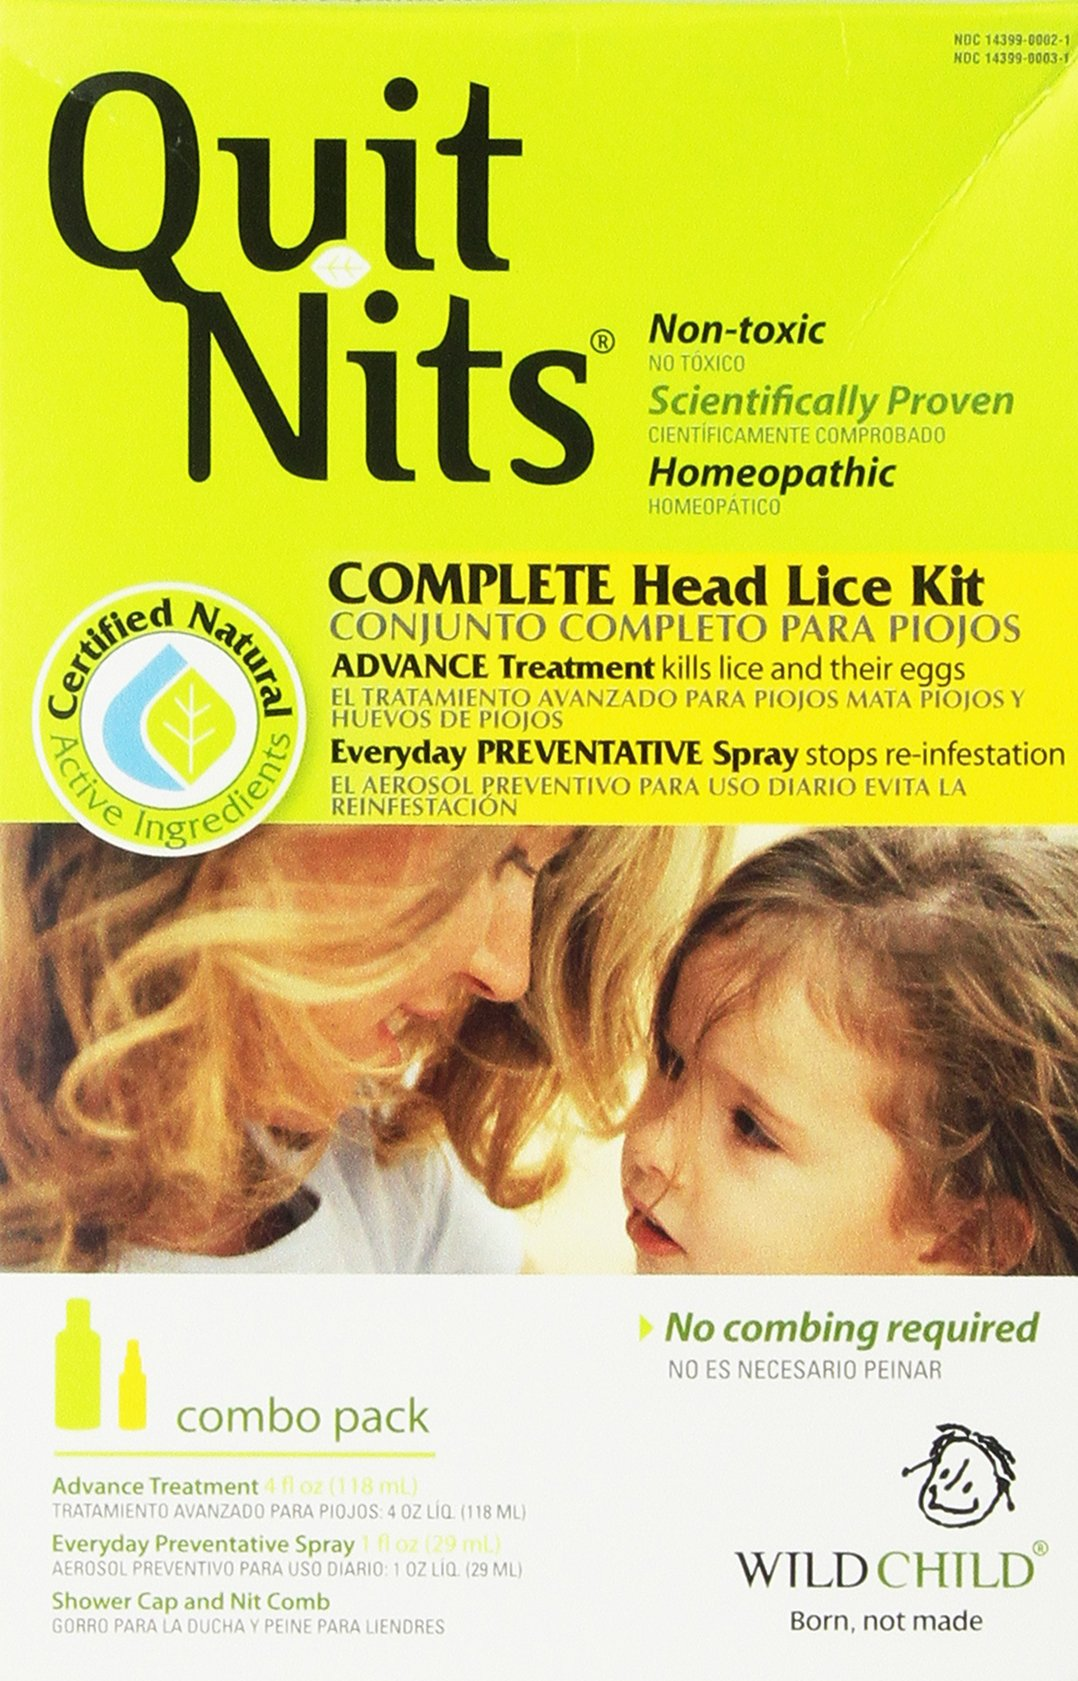 Hyland's Wild Child Quit Nits Complete Head Lice Kit by Hyland's Homeopathic